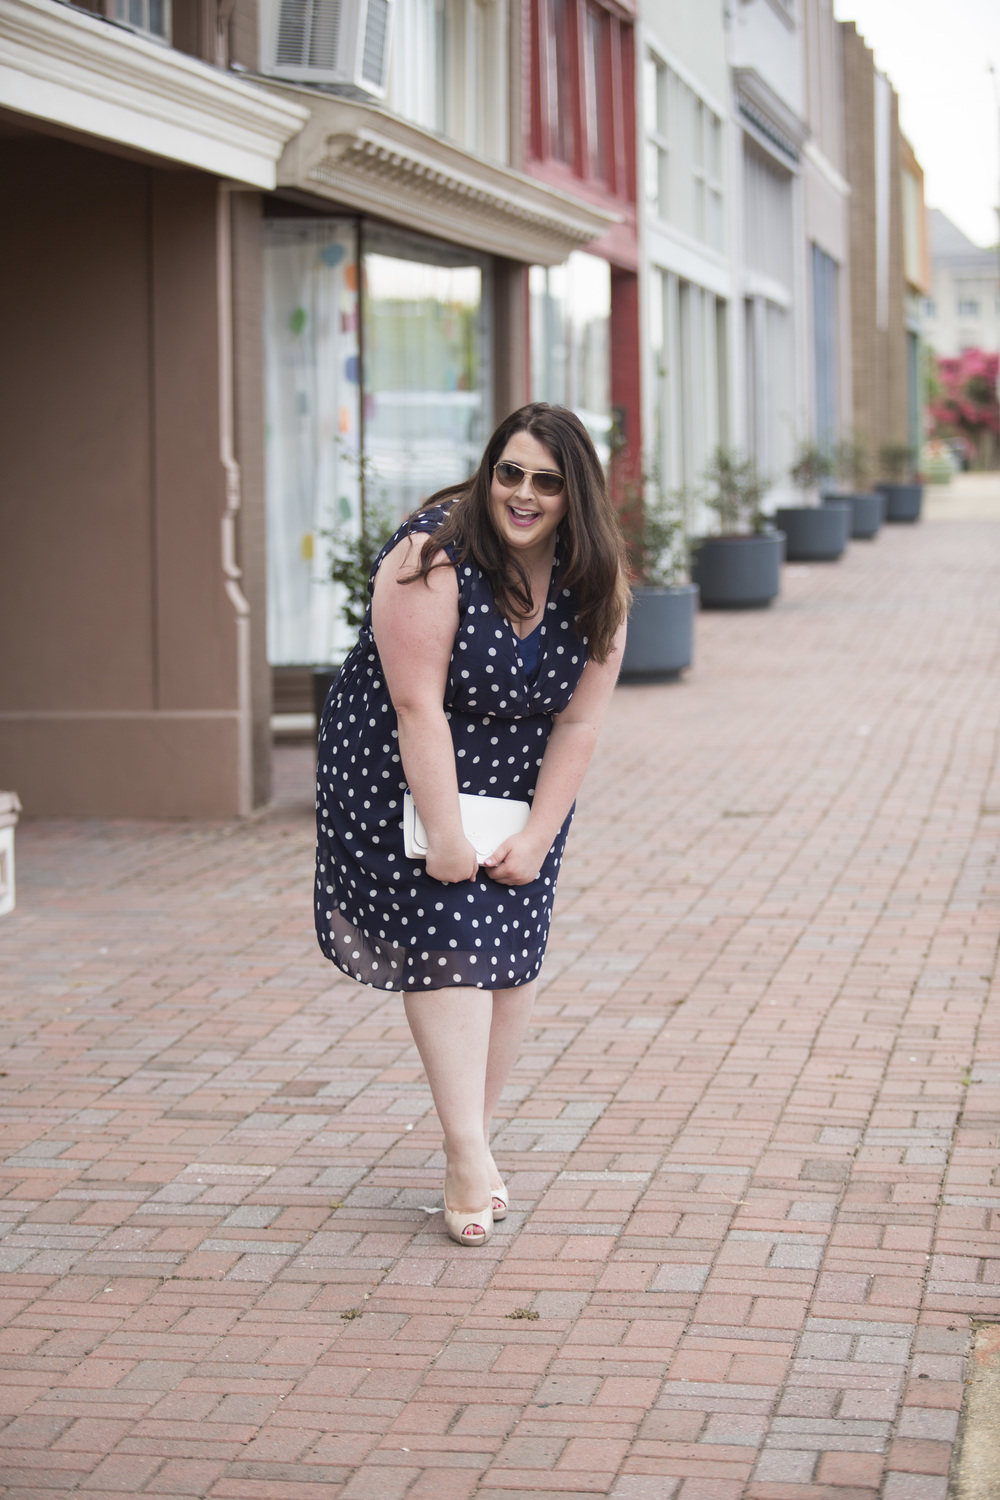 Plus Size Street Style Navy Polka Dot Dress Wedding Guest 4.jpg